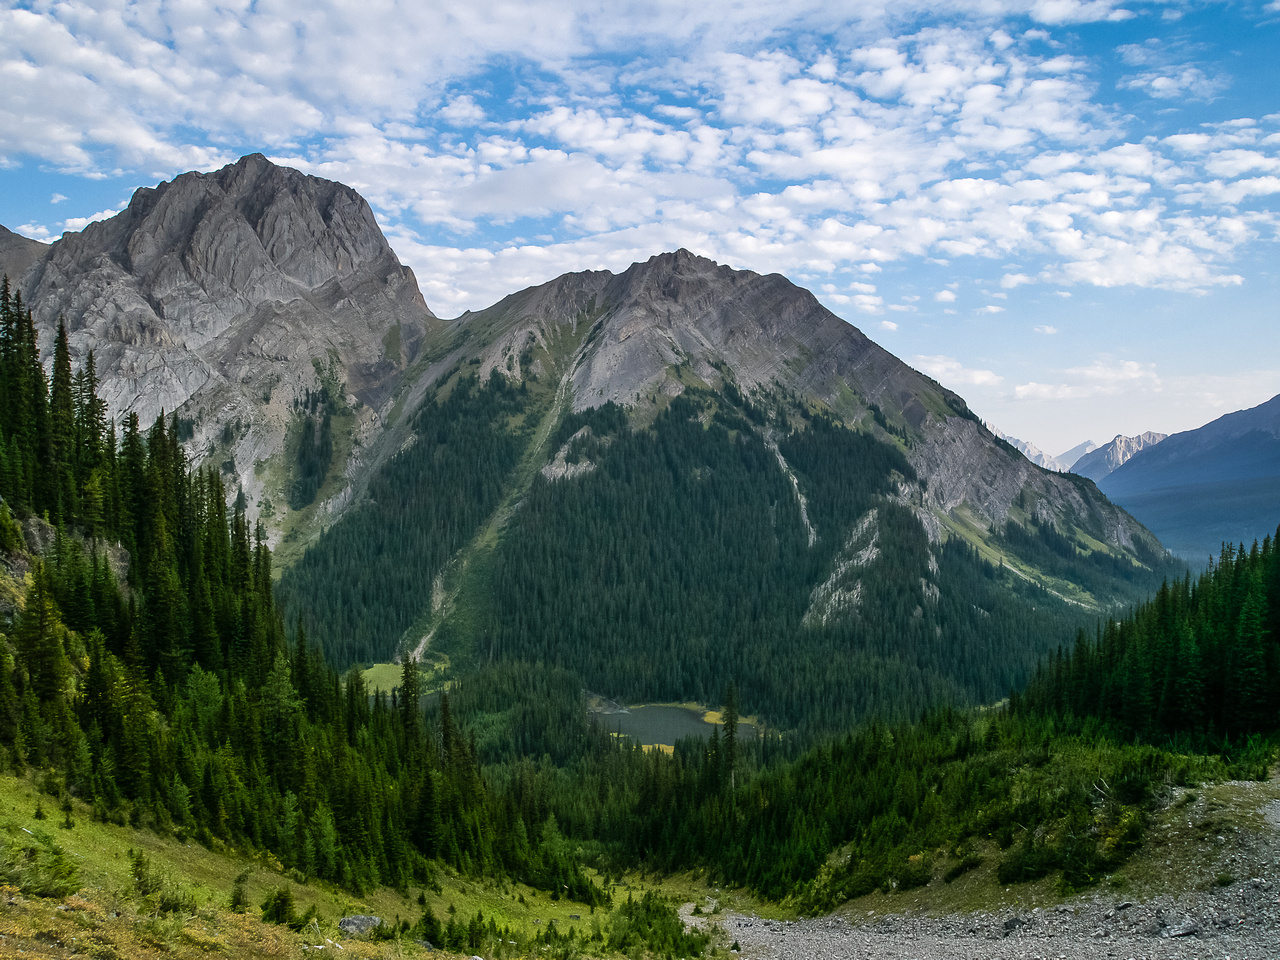 Looking back towards Commonwealth Peak and Ridge (R) over the Burstall Ponds.